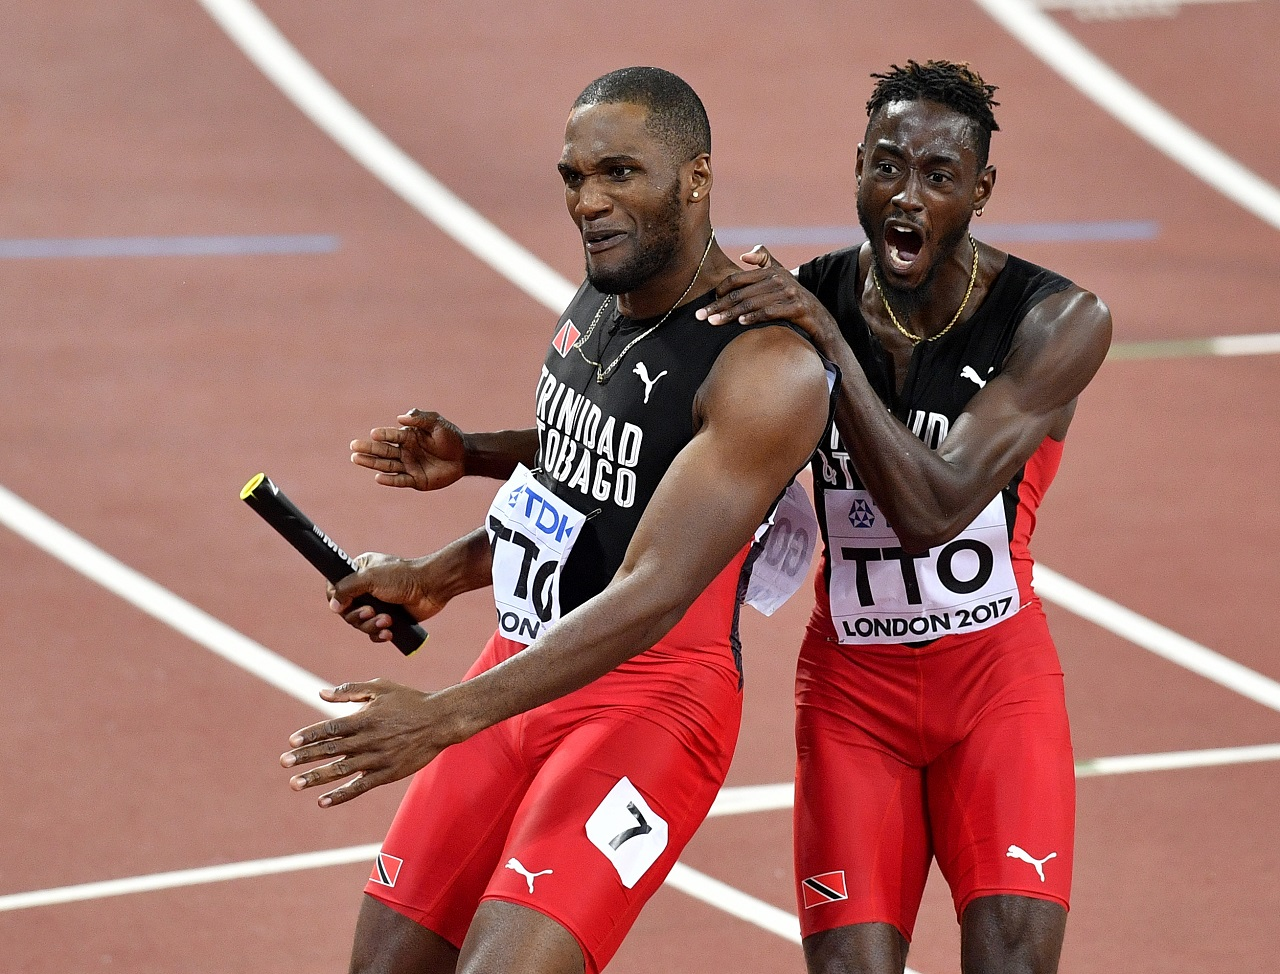 Trinidad and Tabago's Lalonde Gordon celebrates with teammate Jeremy Richards after they won the gold medal in the Men's 4x400 meters relay final at the World Athletics Championships in London Sunday, Aug. 13, 2017.